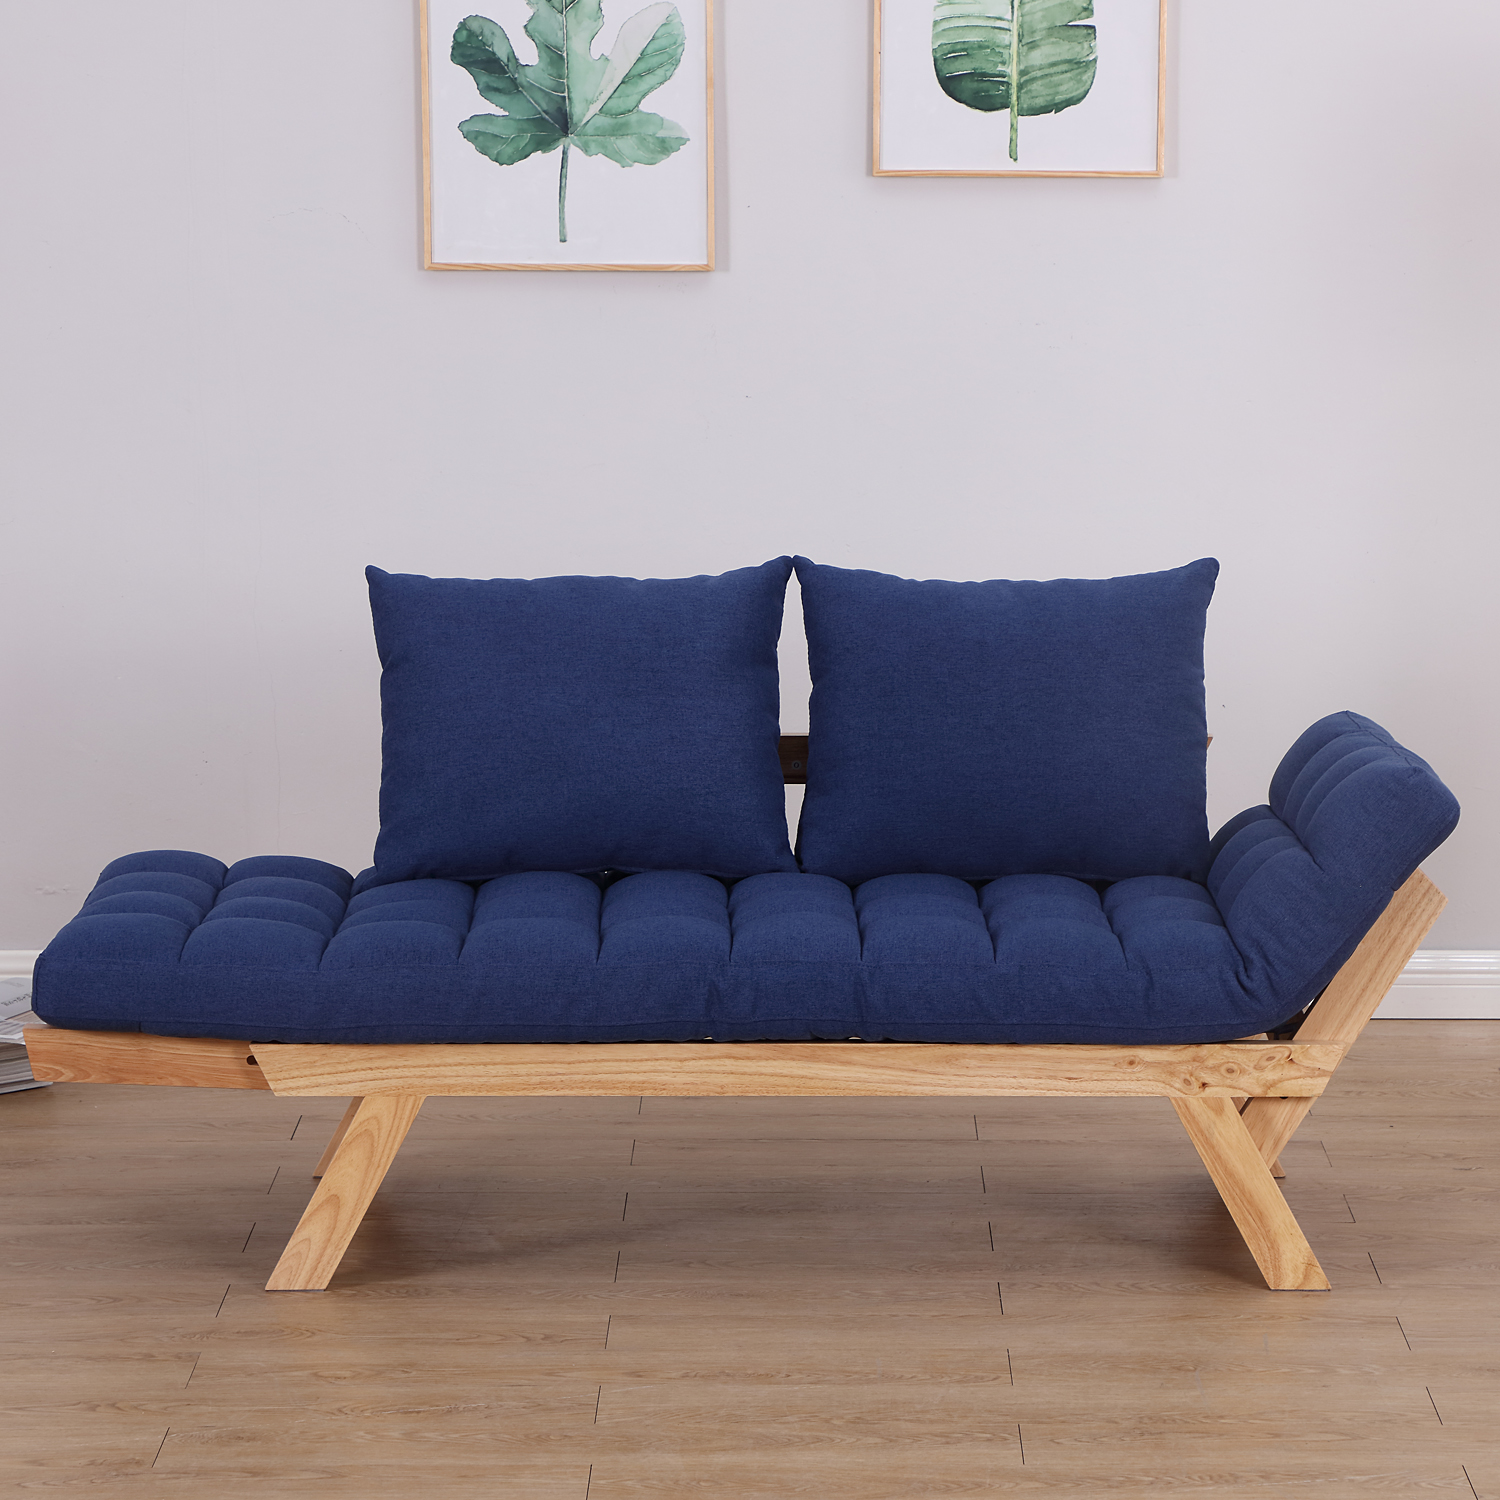 Convertible-Sofa-Bed-Sleeper-Couch-Chaise-Lounge-Chair-Adjustable-Padded-Pillow thumbnail 50